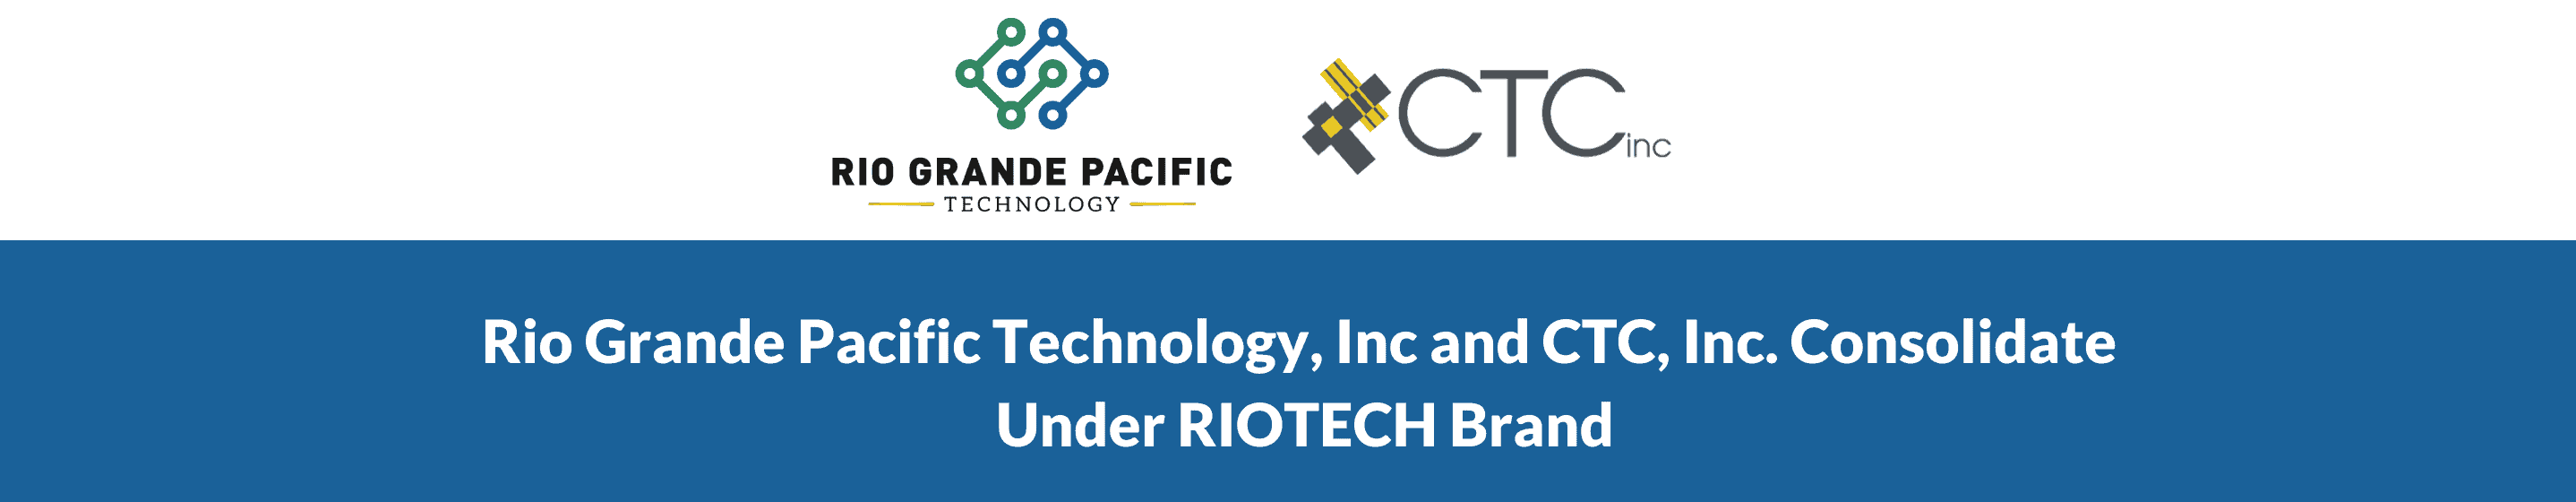 Copy of Rio Grande Pacific Technology, Inc and CTC, Inc. Consolidating Under RIOTECH Brand (1)